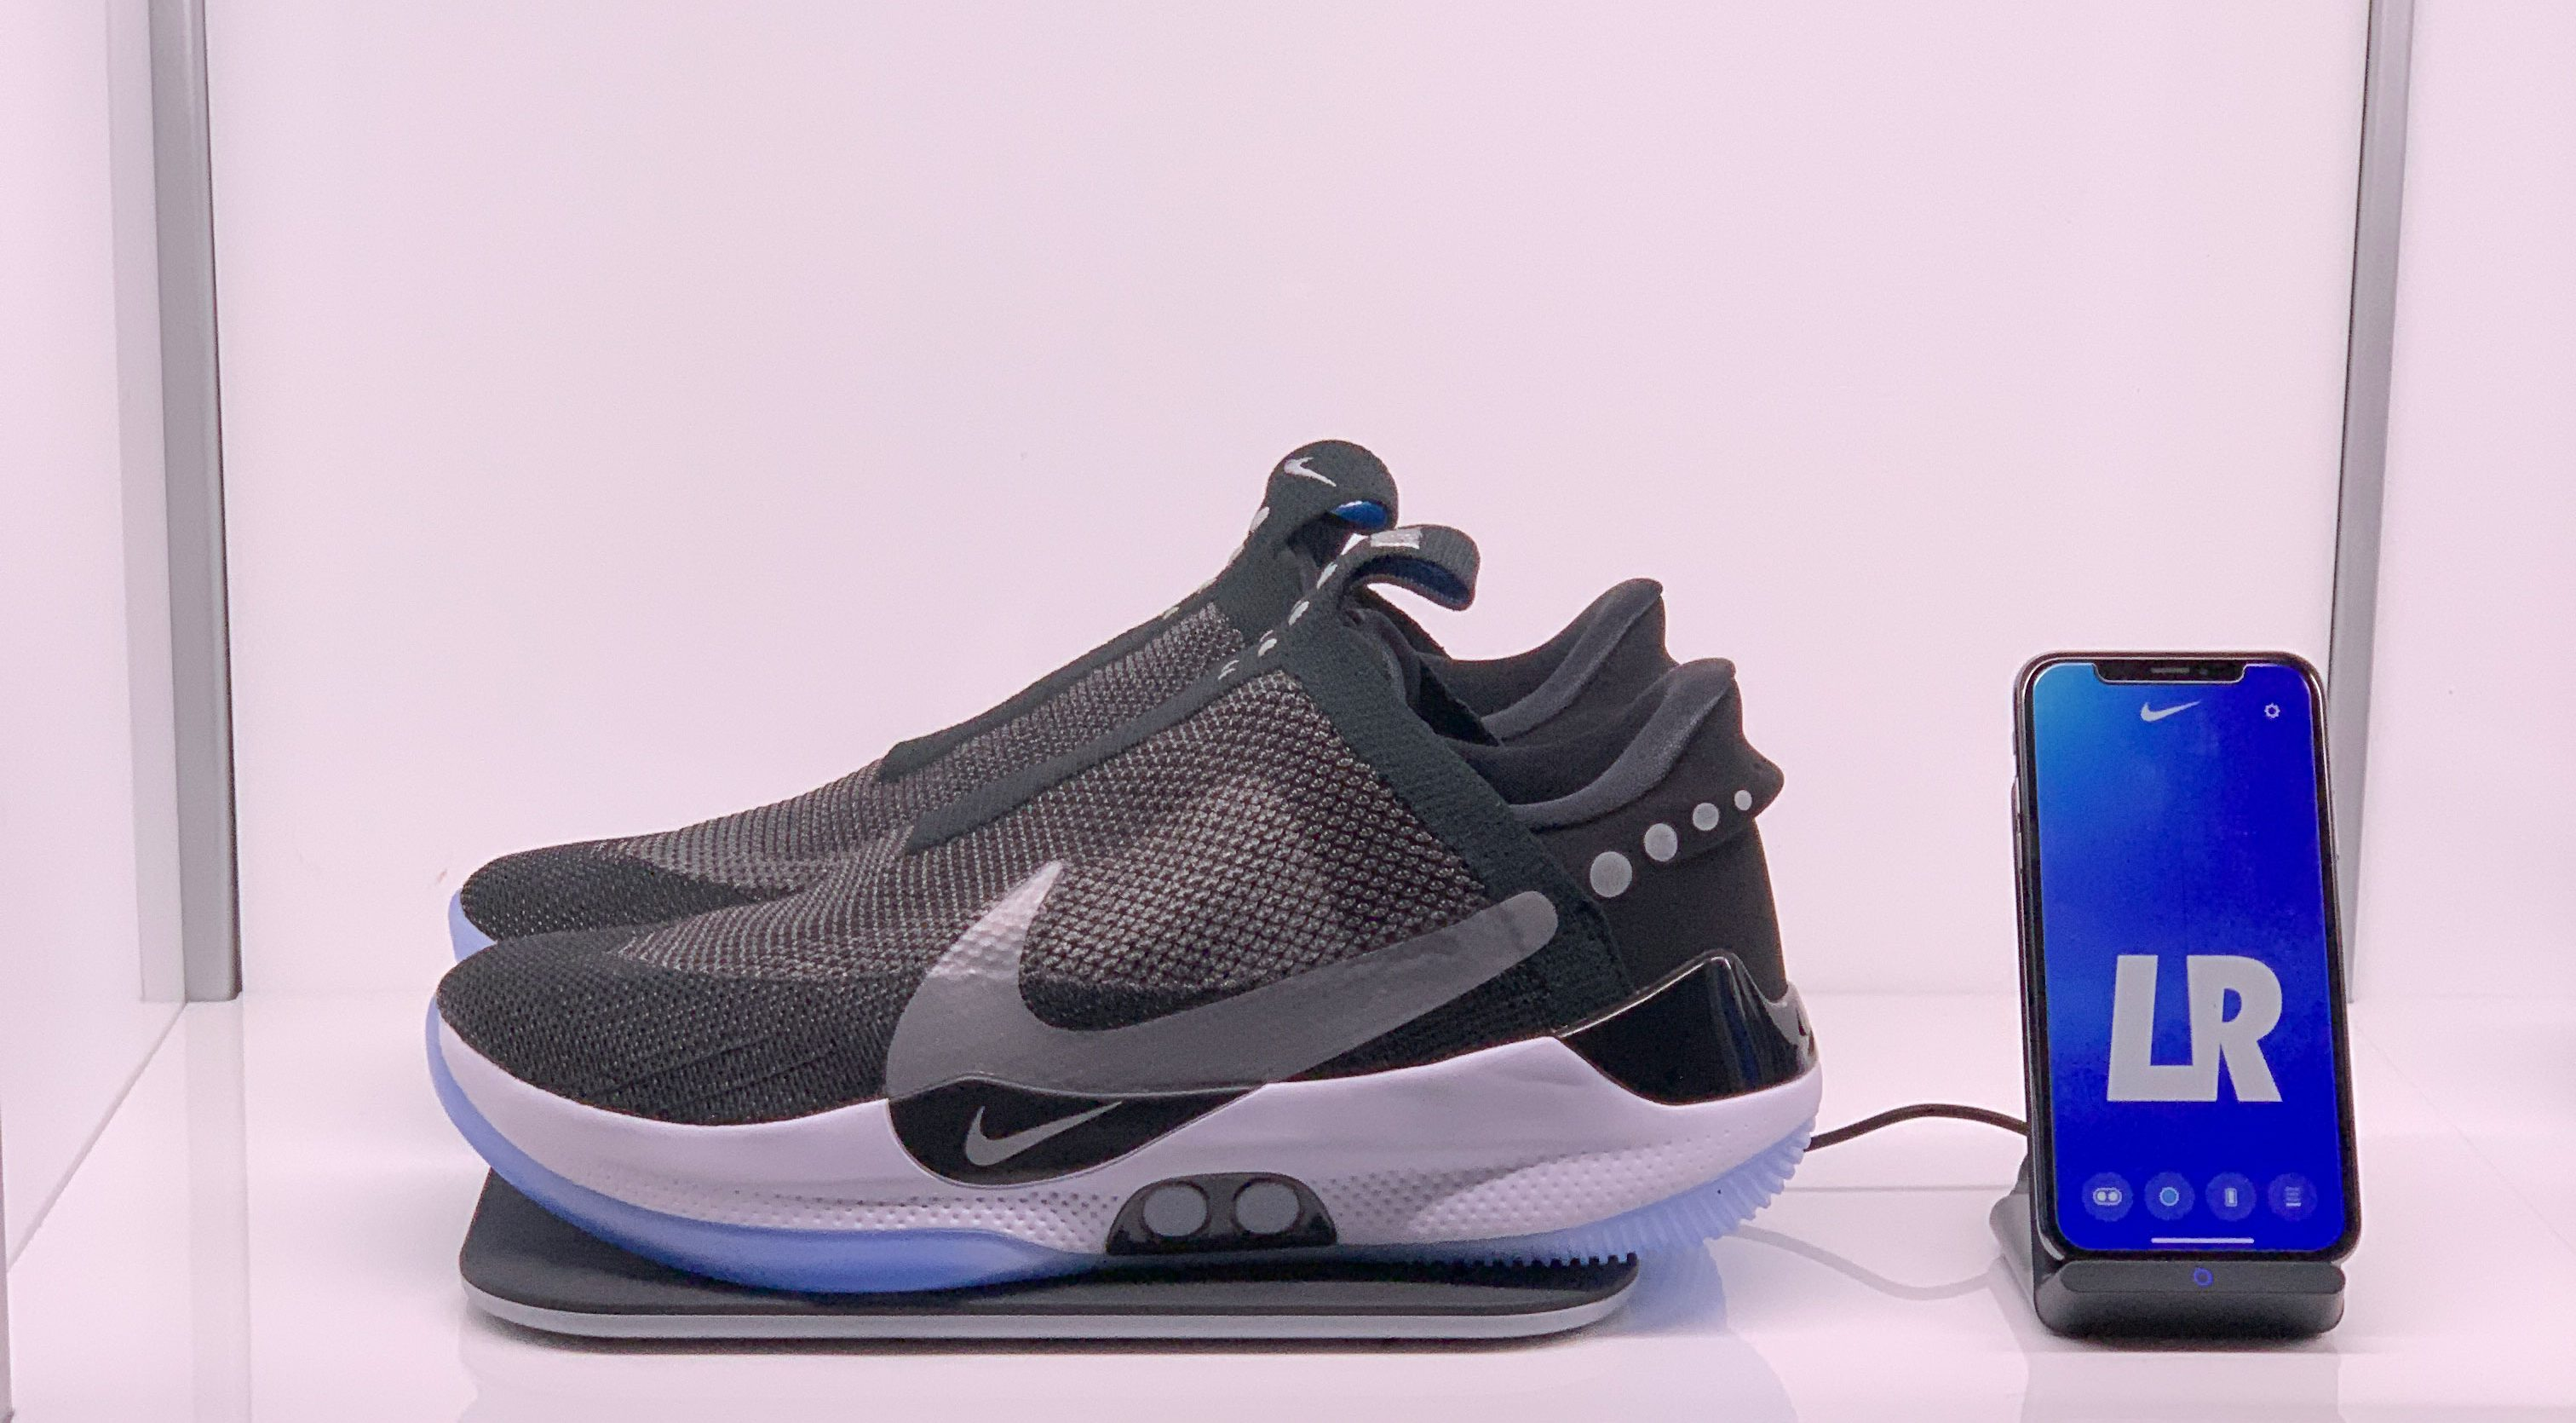 online store c3316 5914c Techmeme  Hands-on with Nike s  350 Bluetooth-enabled Adapt BB shoe with  automated power-lacing, which will allow basketball players to change shoe  ...